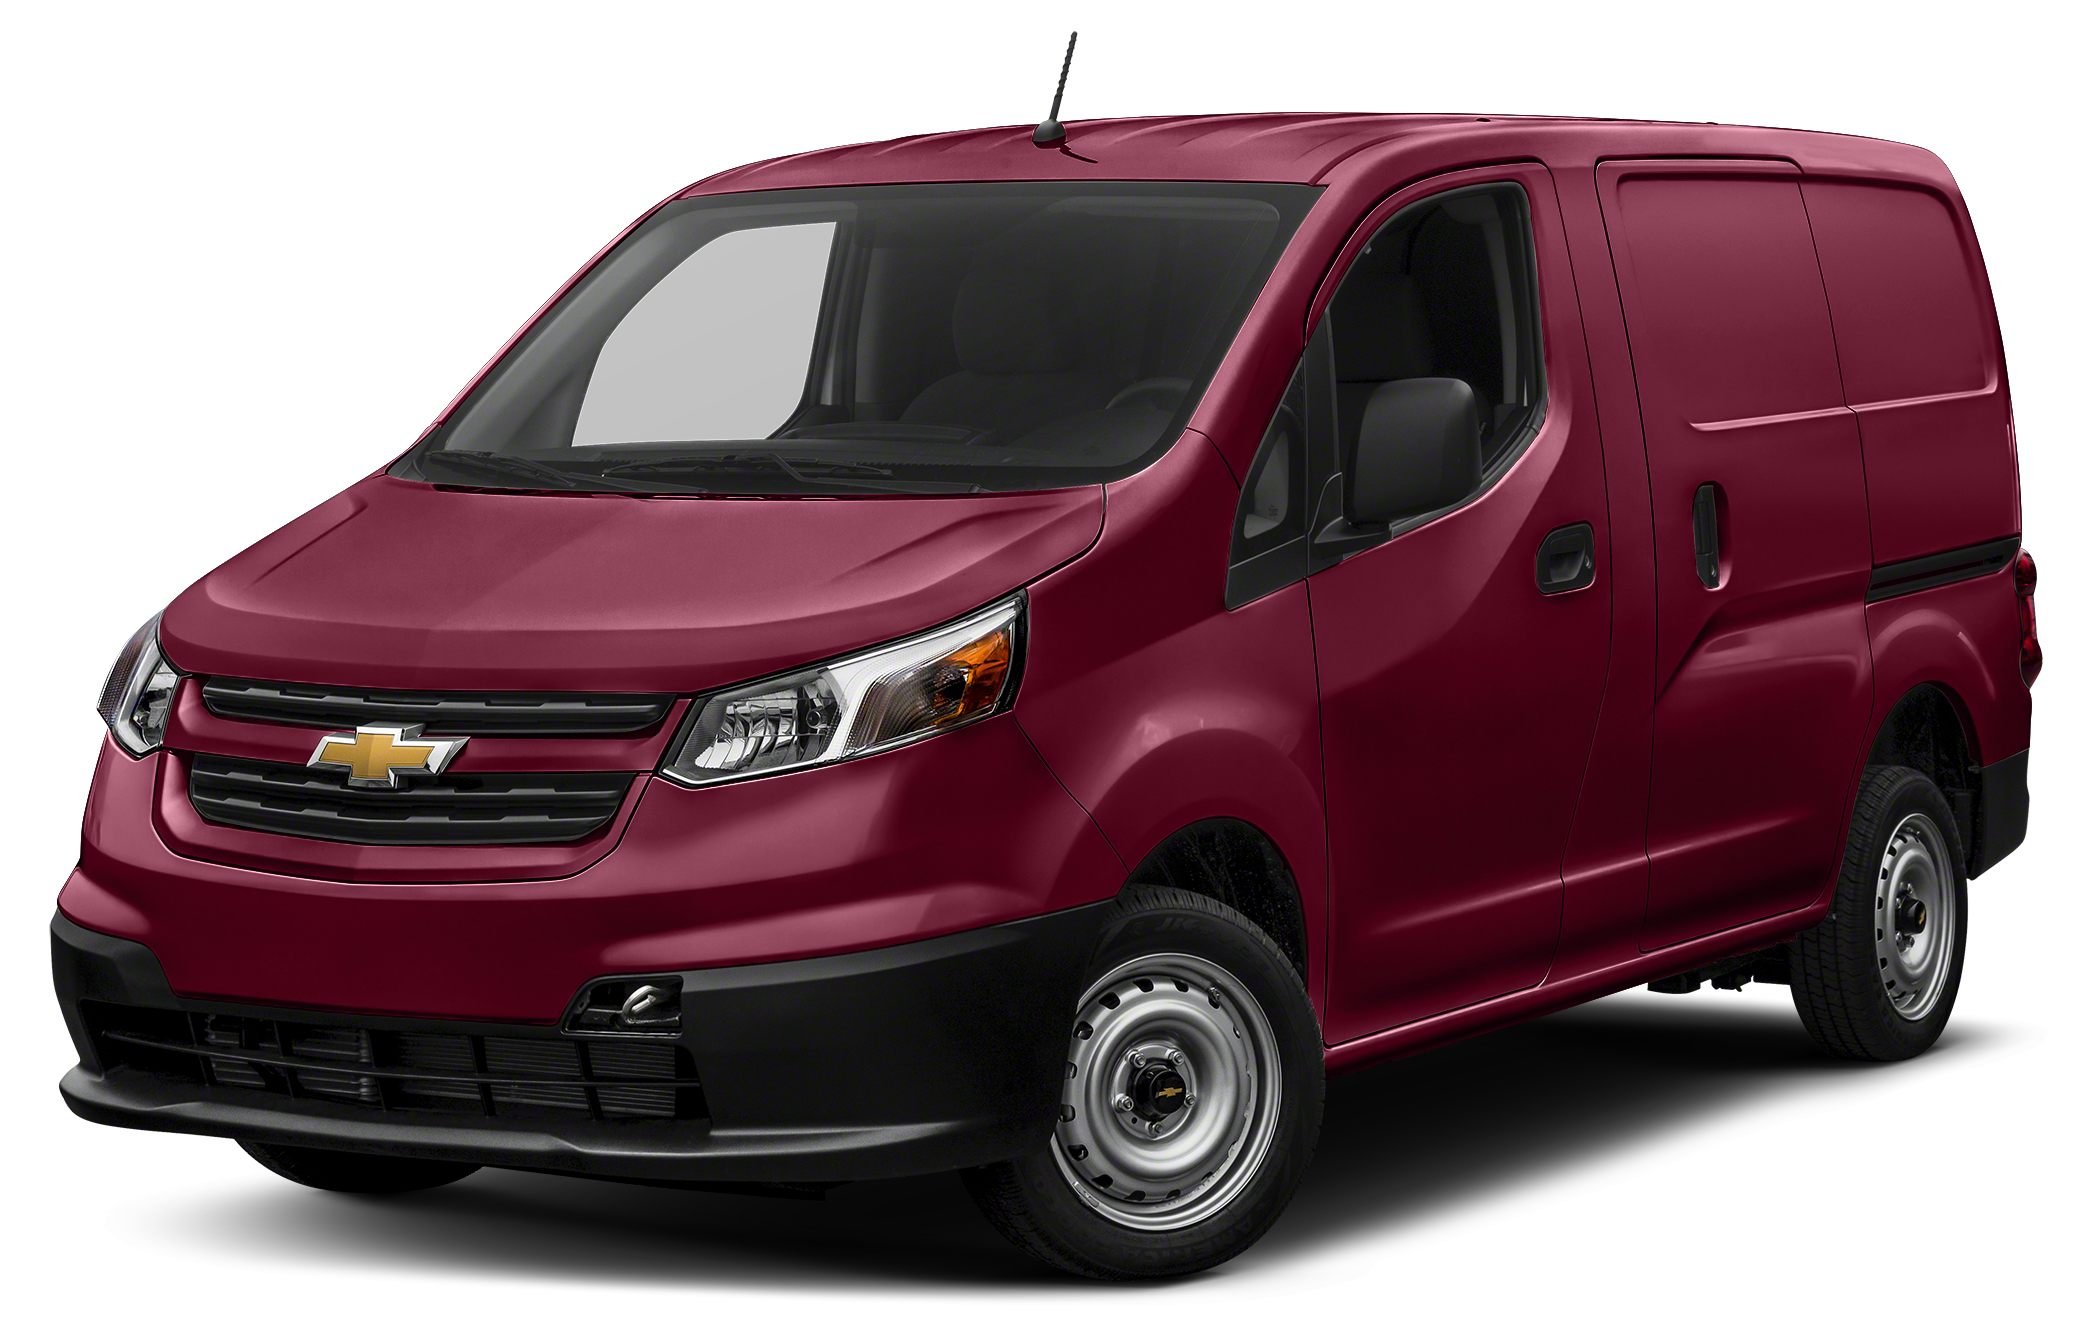 2015 Chevrolet City Express 1LS APPEARANCE PACKAGE GLASS DEEP TINT REAR DOORS AND PASS TRANS